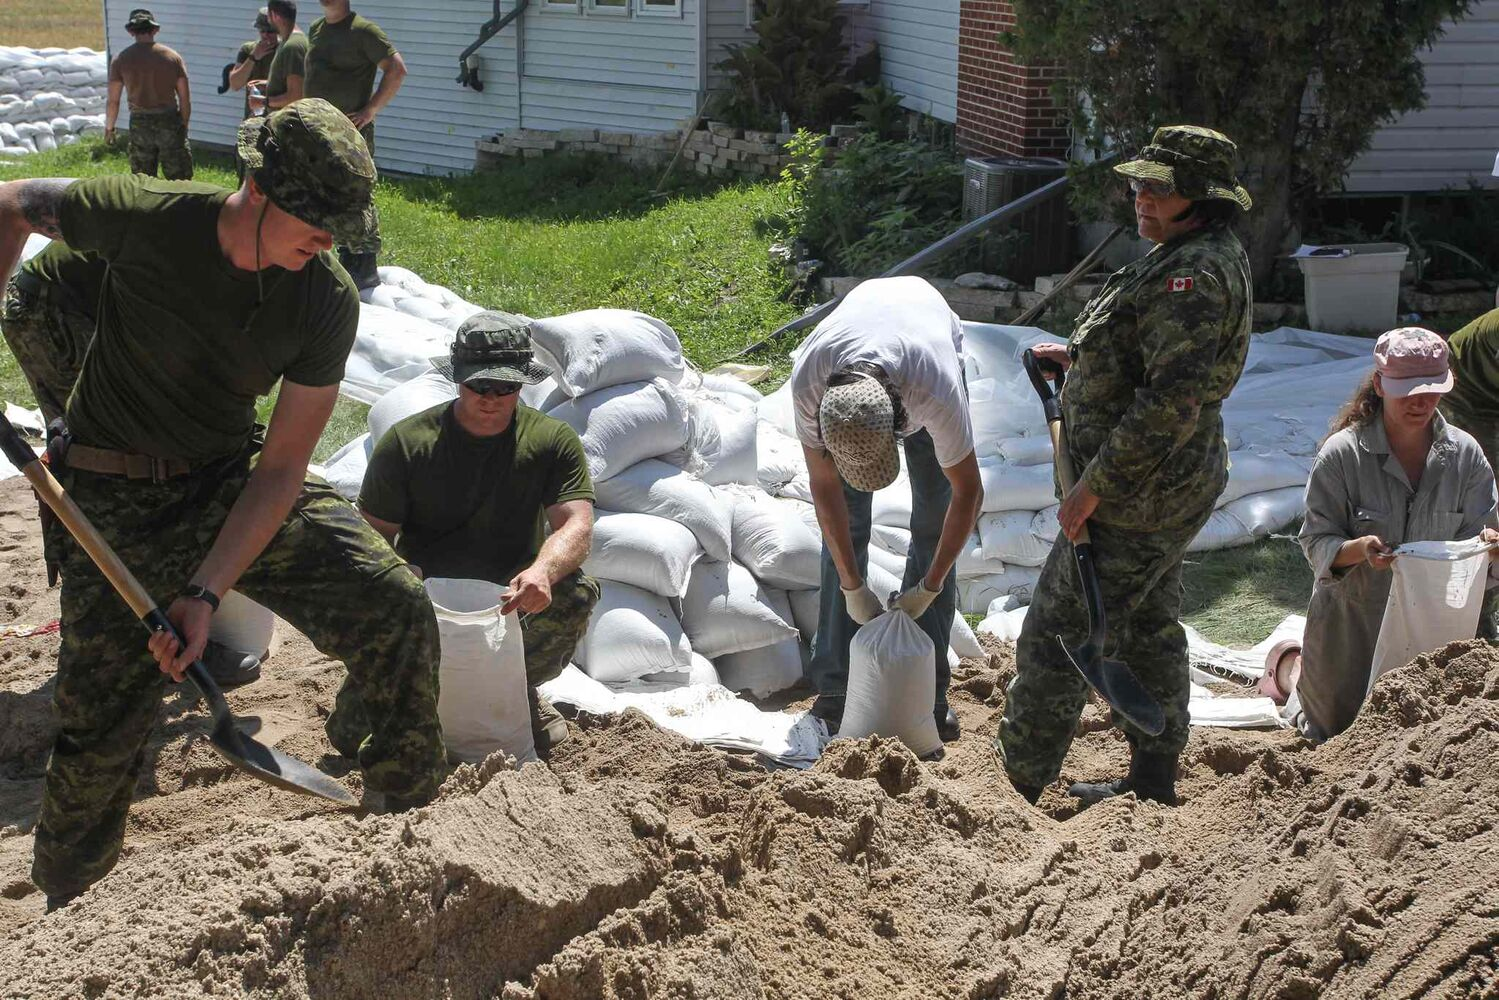 Soldiers from CFB Shilo and volunteers help fortify Kevin Van Camp's home from flood water near St. Francois Xavier Sunday afternoon.  (Mike Deal / Winnipeg Free Press)